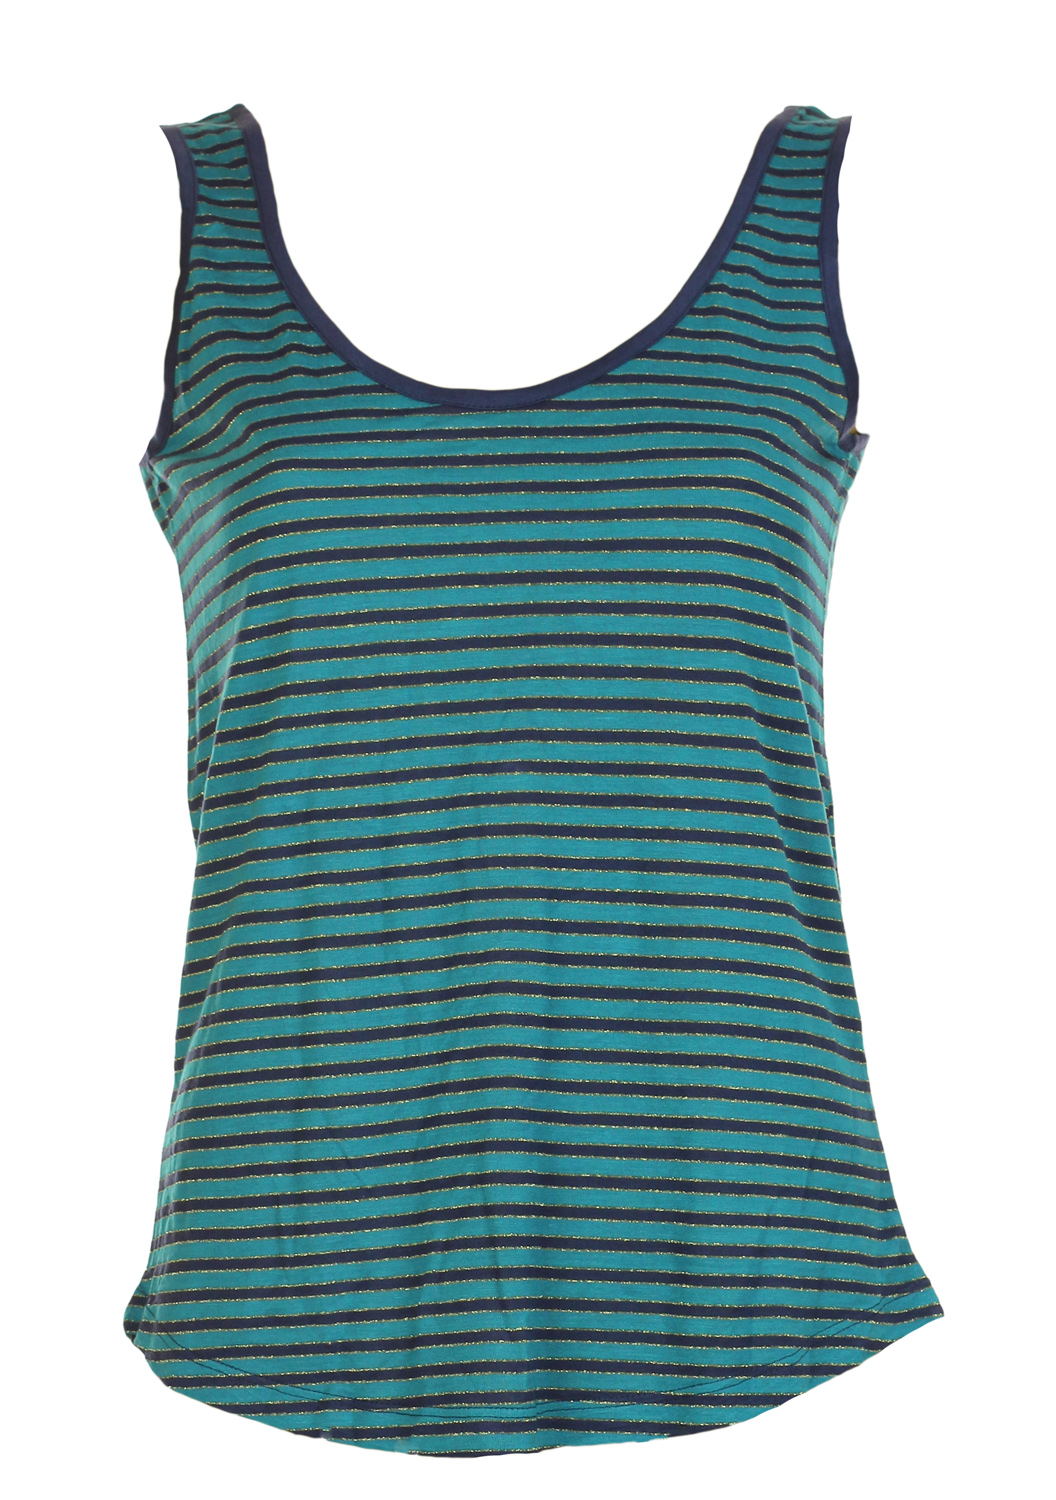 Maieu Pull and Bear Marter Turquoise